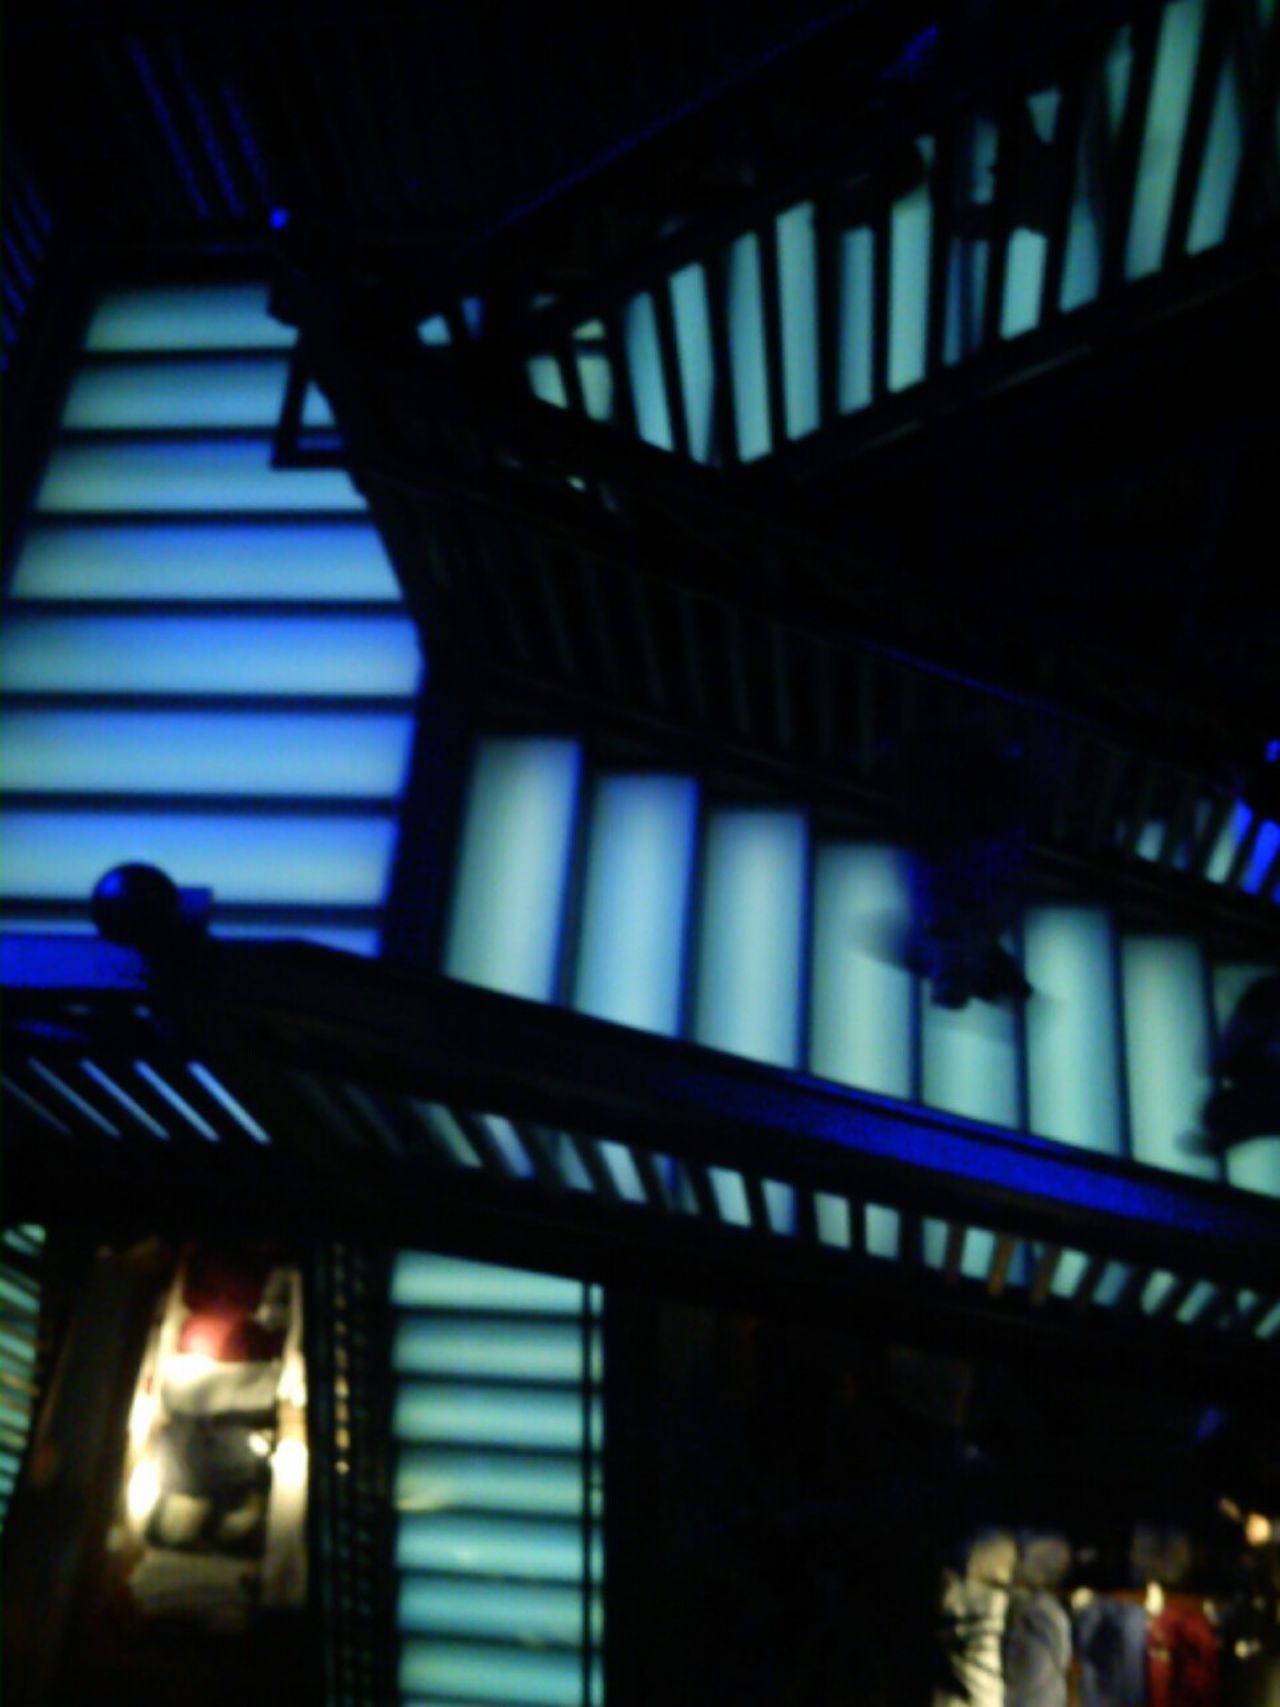 Indoors  Silhouette Staircase Architecture Illuminated Exit Sign Day People Up And Down Blue Black EyeEmNewHere EyeEm Best Shots The Week On EyeEm No Filter, No Edit, Just Photography Urban